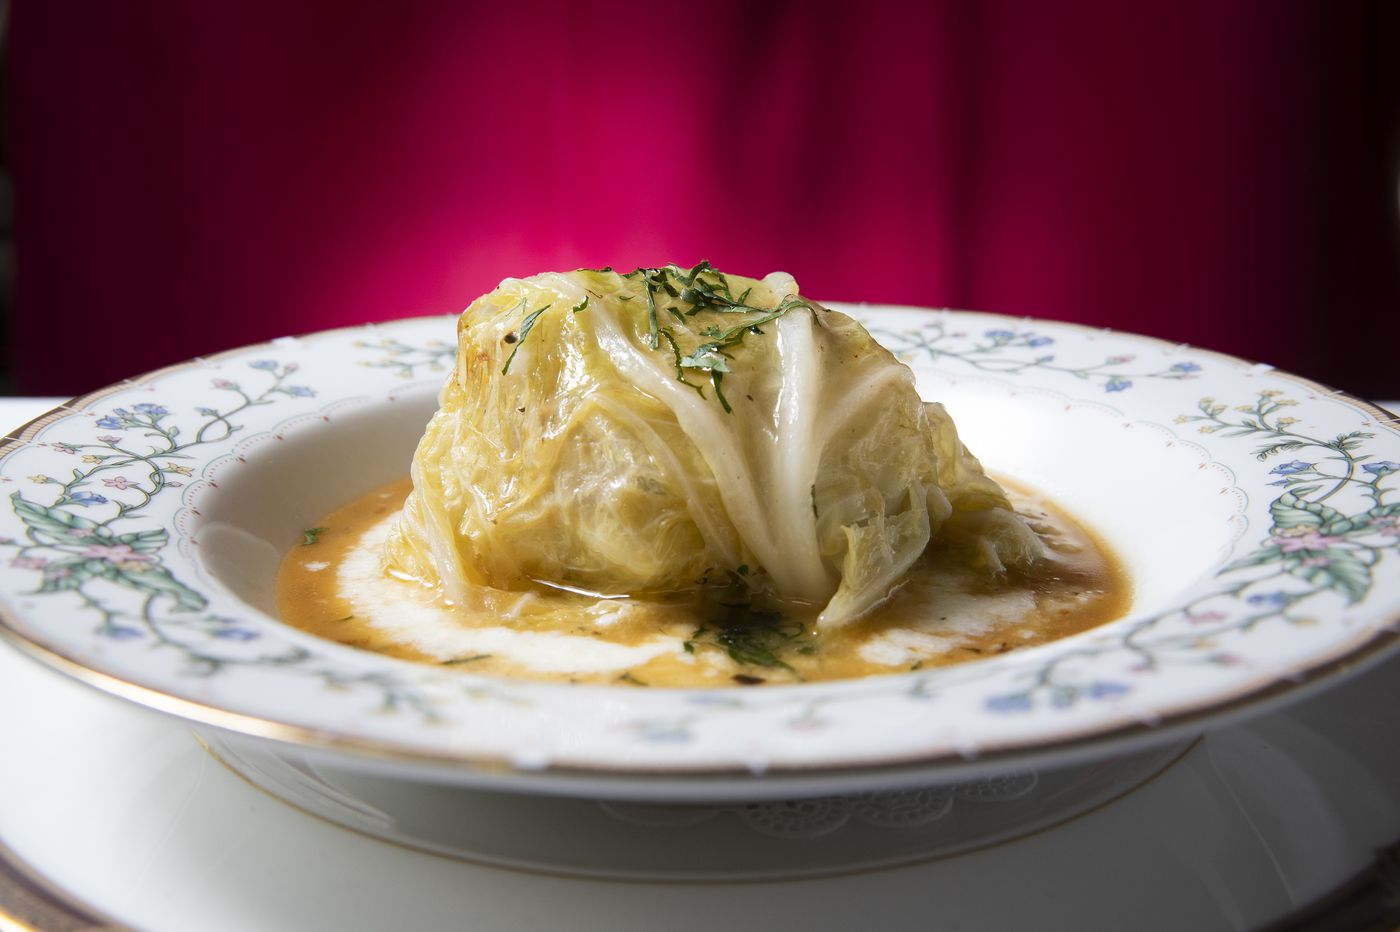 Cabbage is the new vegetable king in Philly restaurants